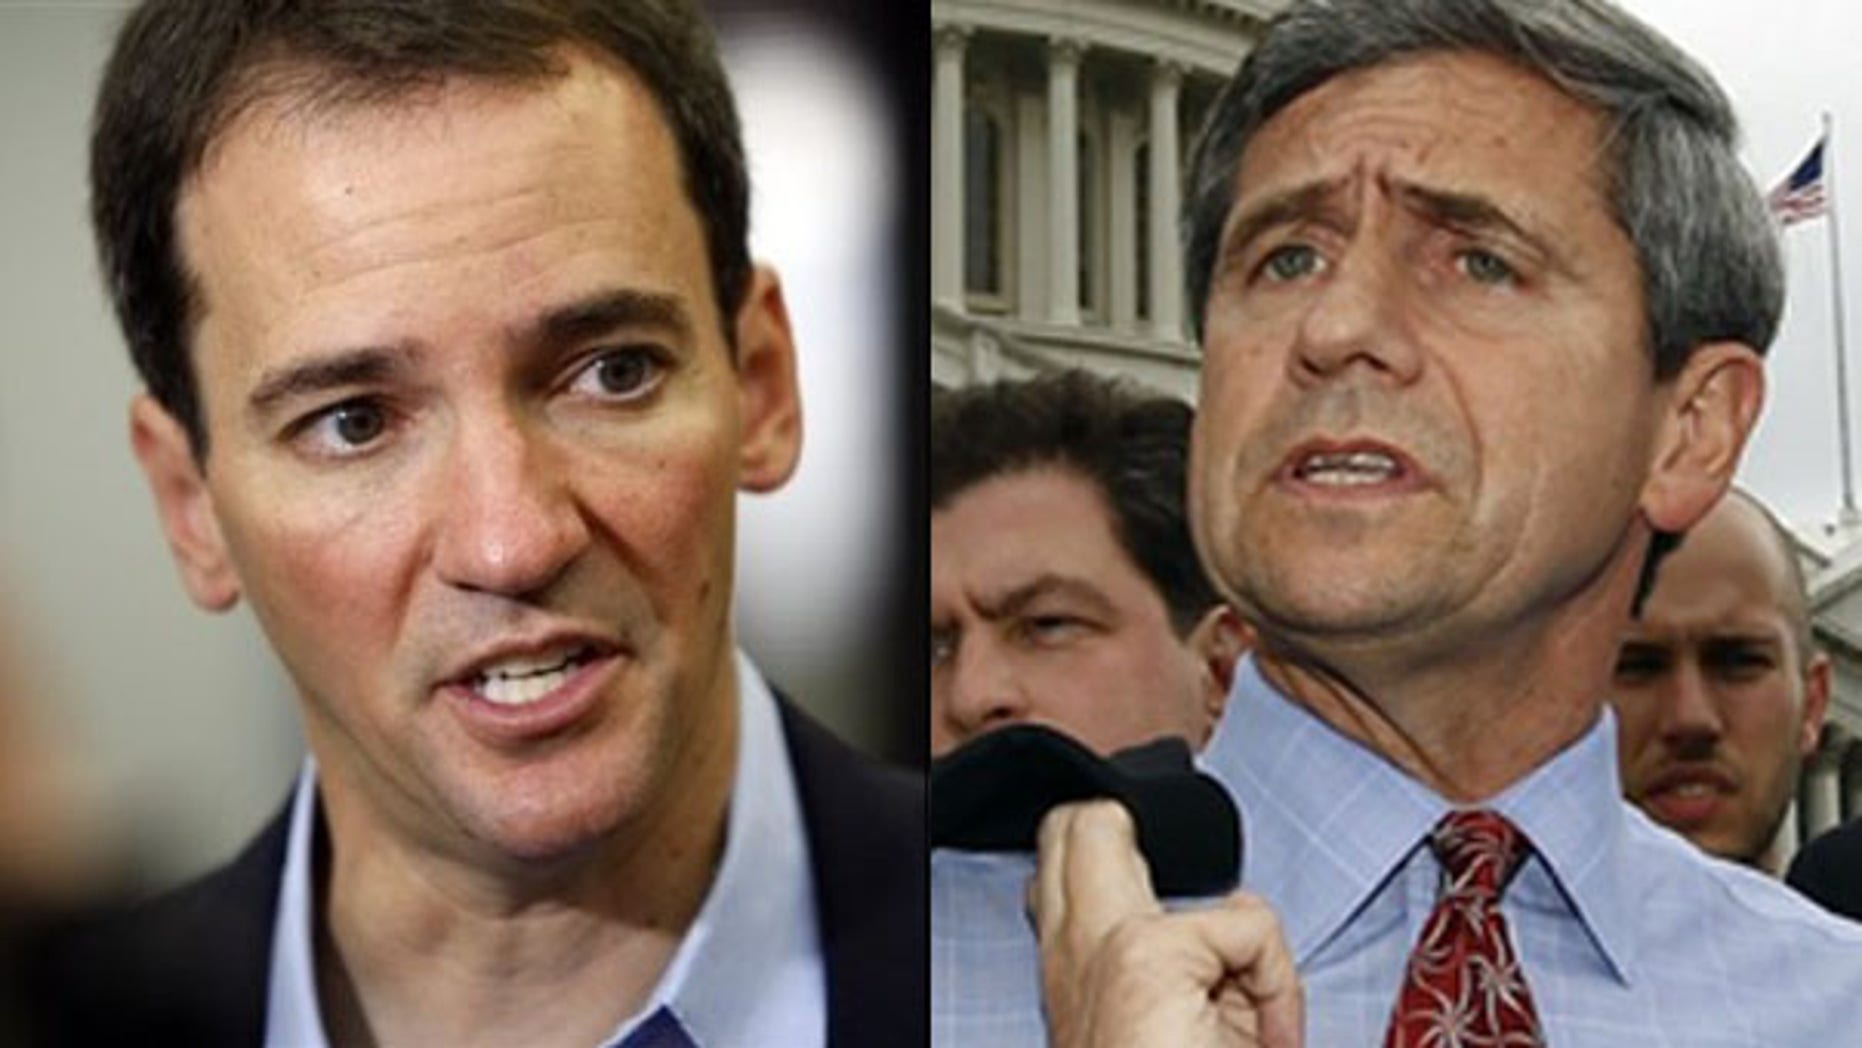 Shown here are Colorado Senate candidate Andrew Romanoff, left., and Pennsylvania Senate candidate Joe Sestak. (AP/Reuters Photos)